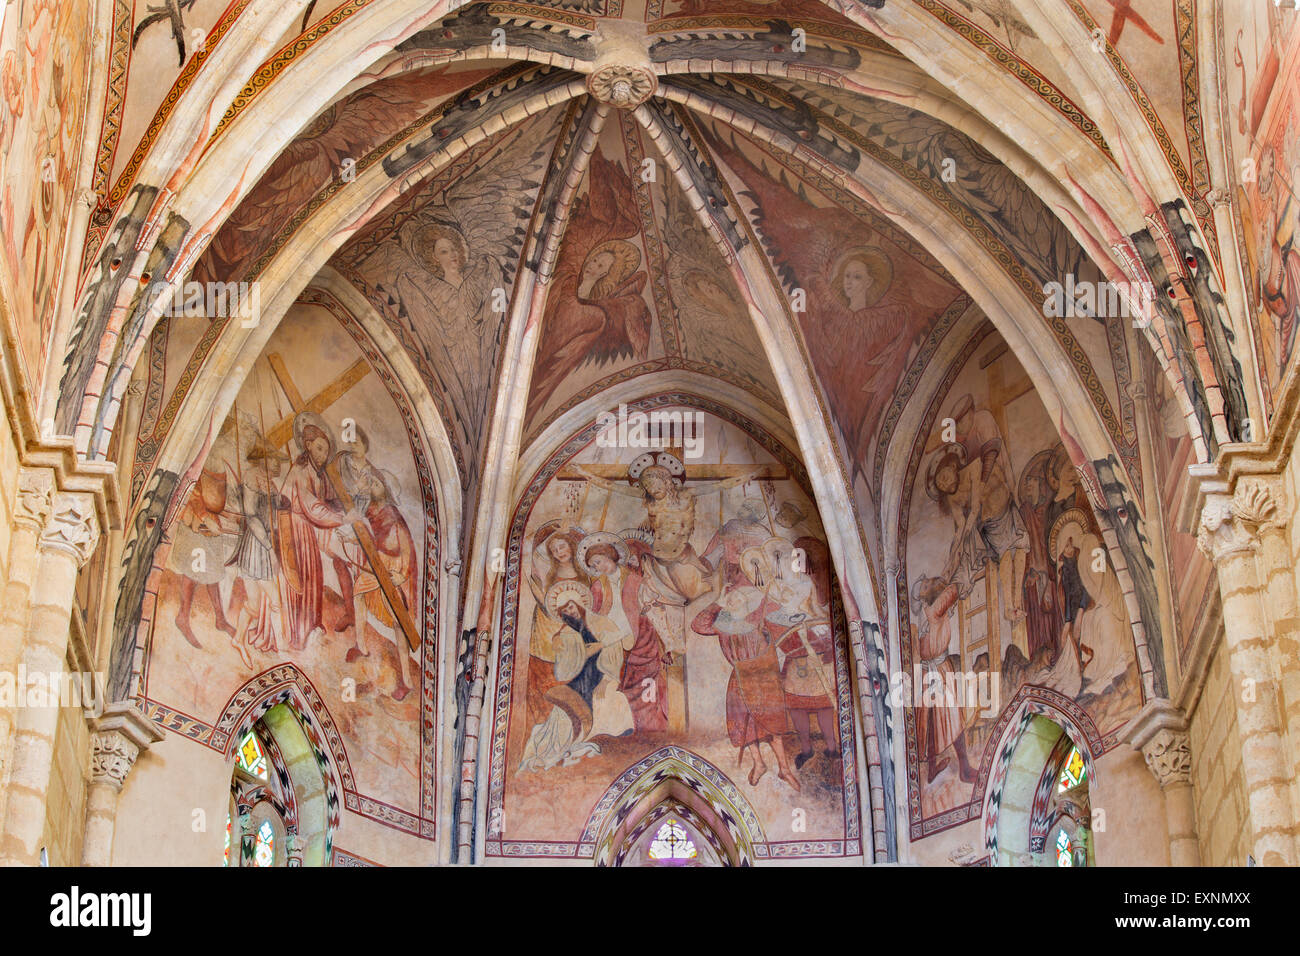 CORDOBA, SPAIN - MAY 27, 2015: The medieval frescoes of affliction of Christ in main apse of church Iglesia de San - Stock Image